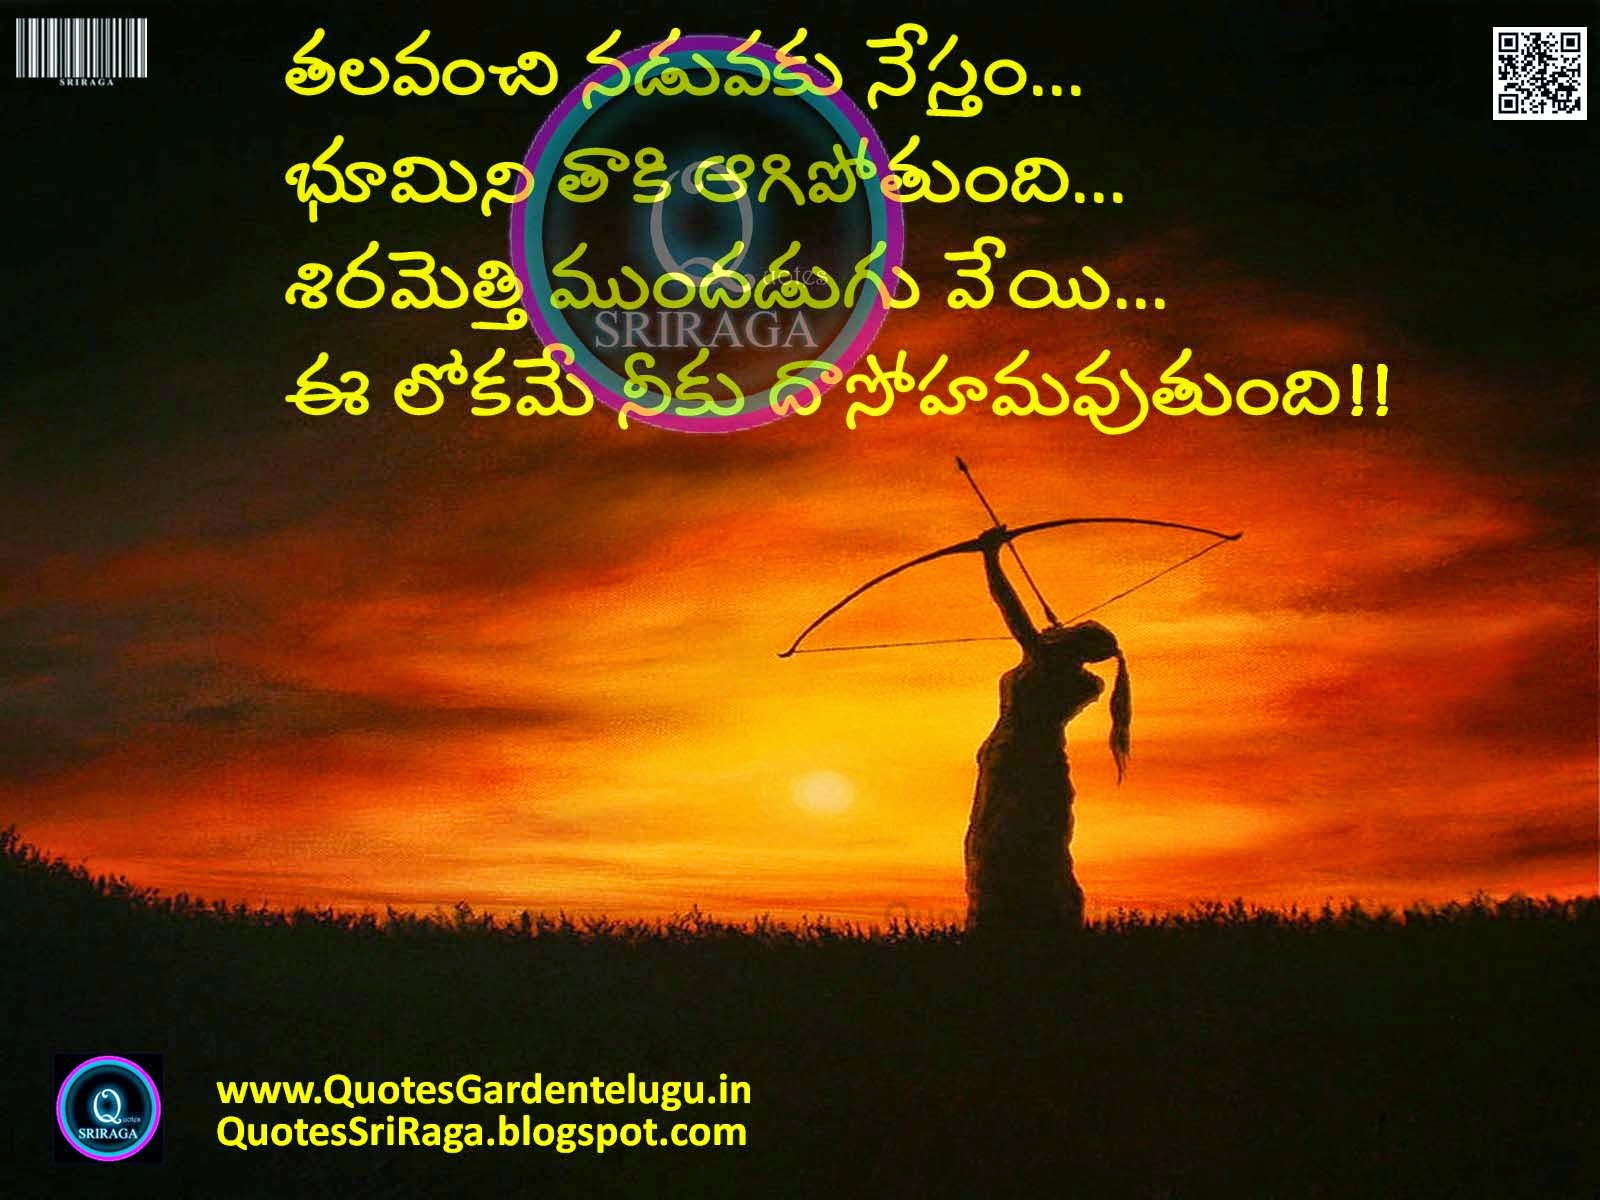 Inspirational Quotes On Life In Telugu - Quotes about Life